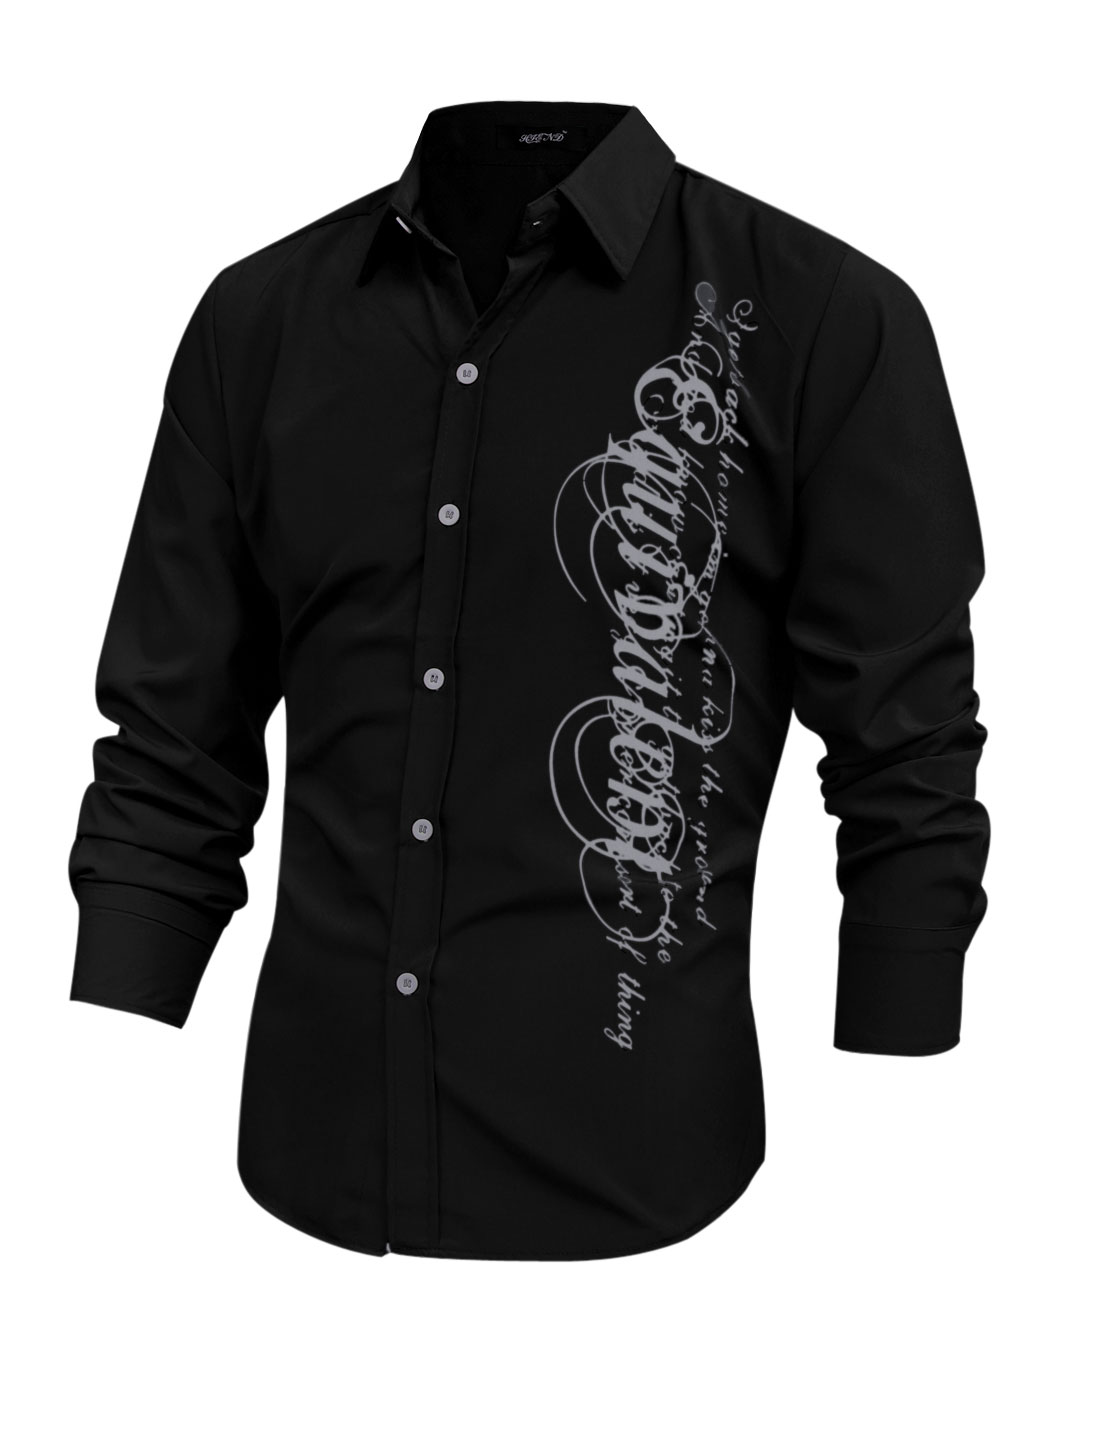 Men Long Sleeve Button Closure Letters Prints Shirt Black M